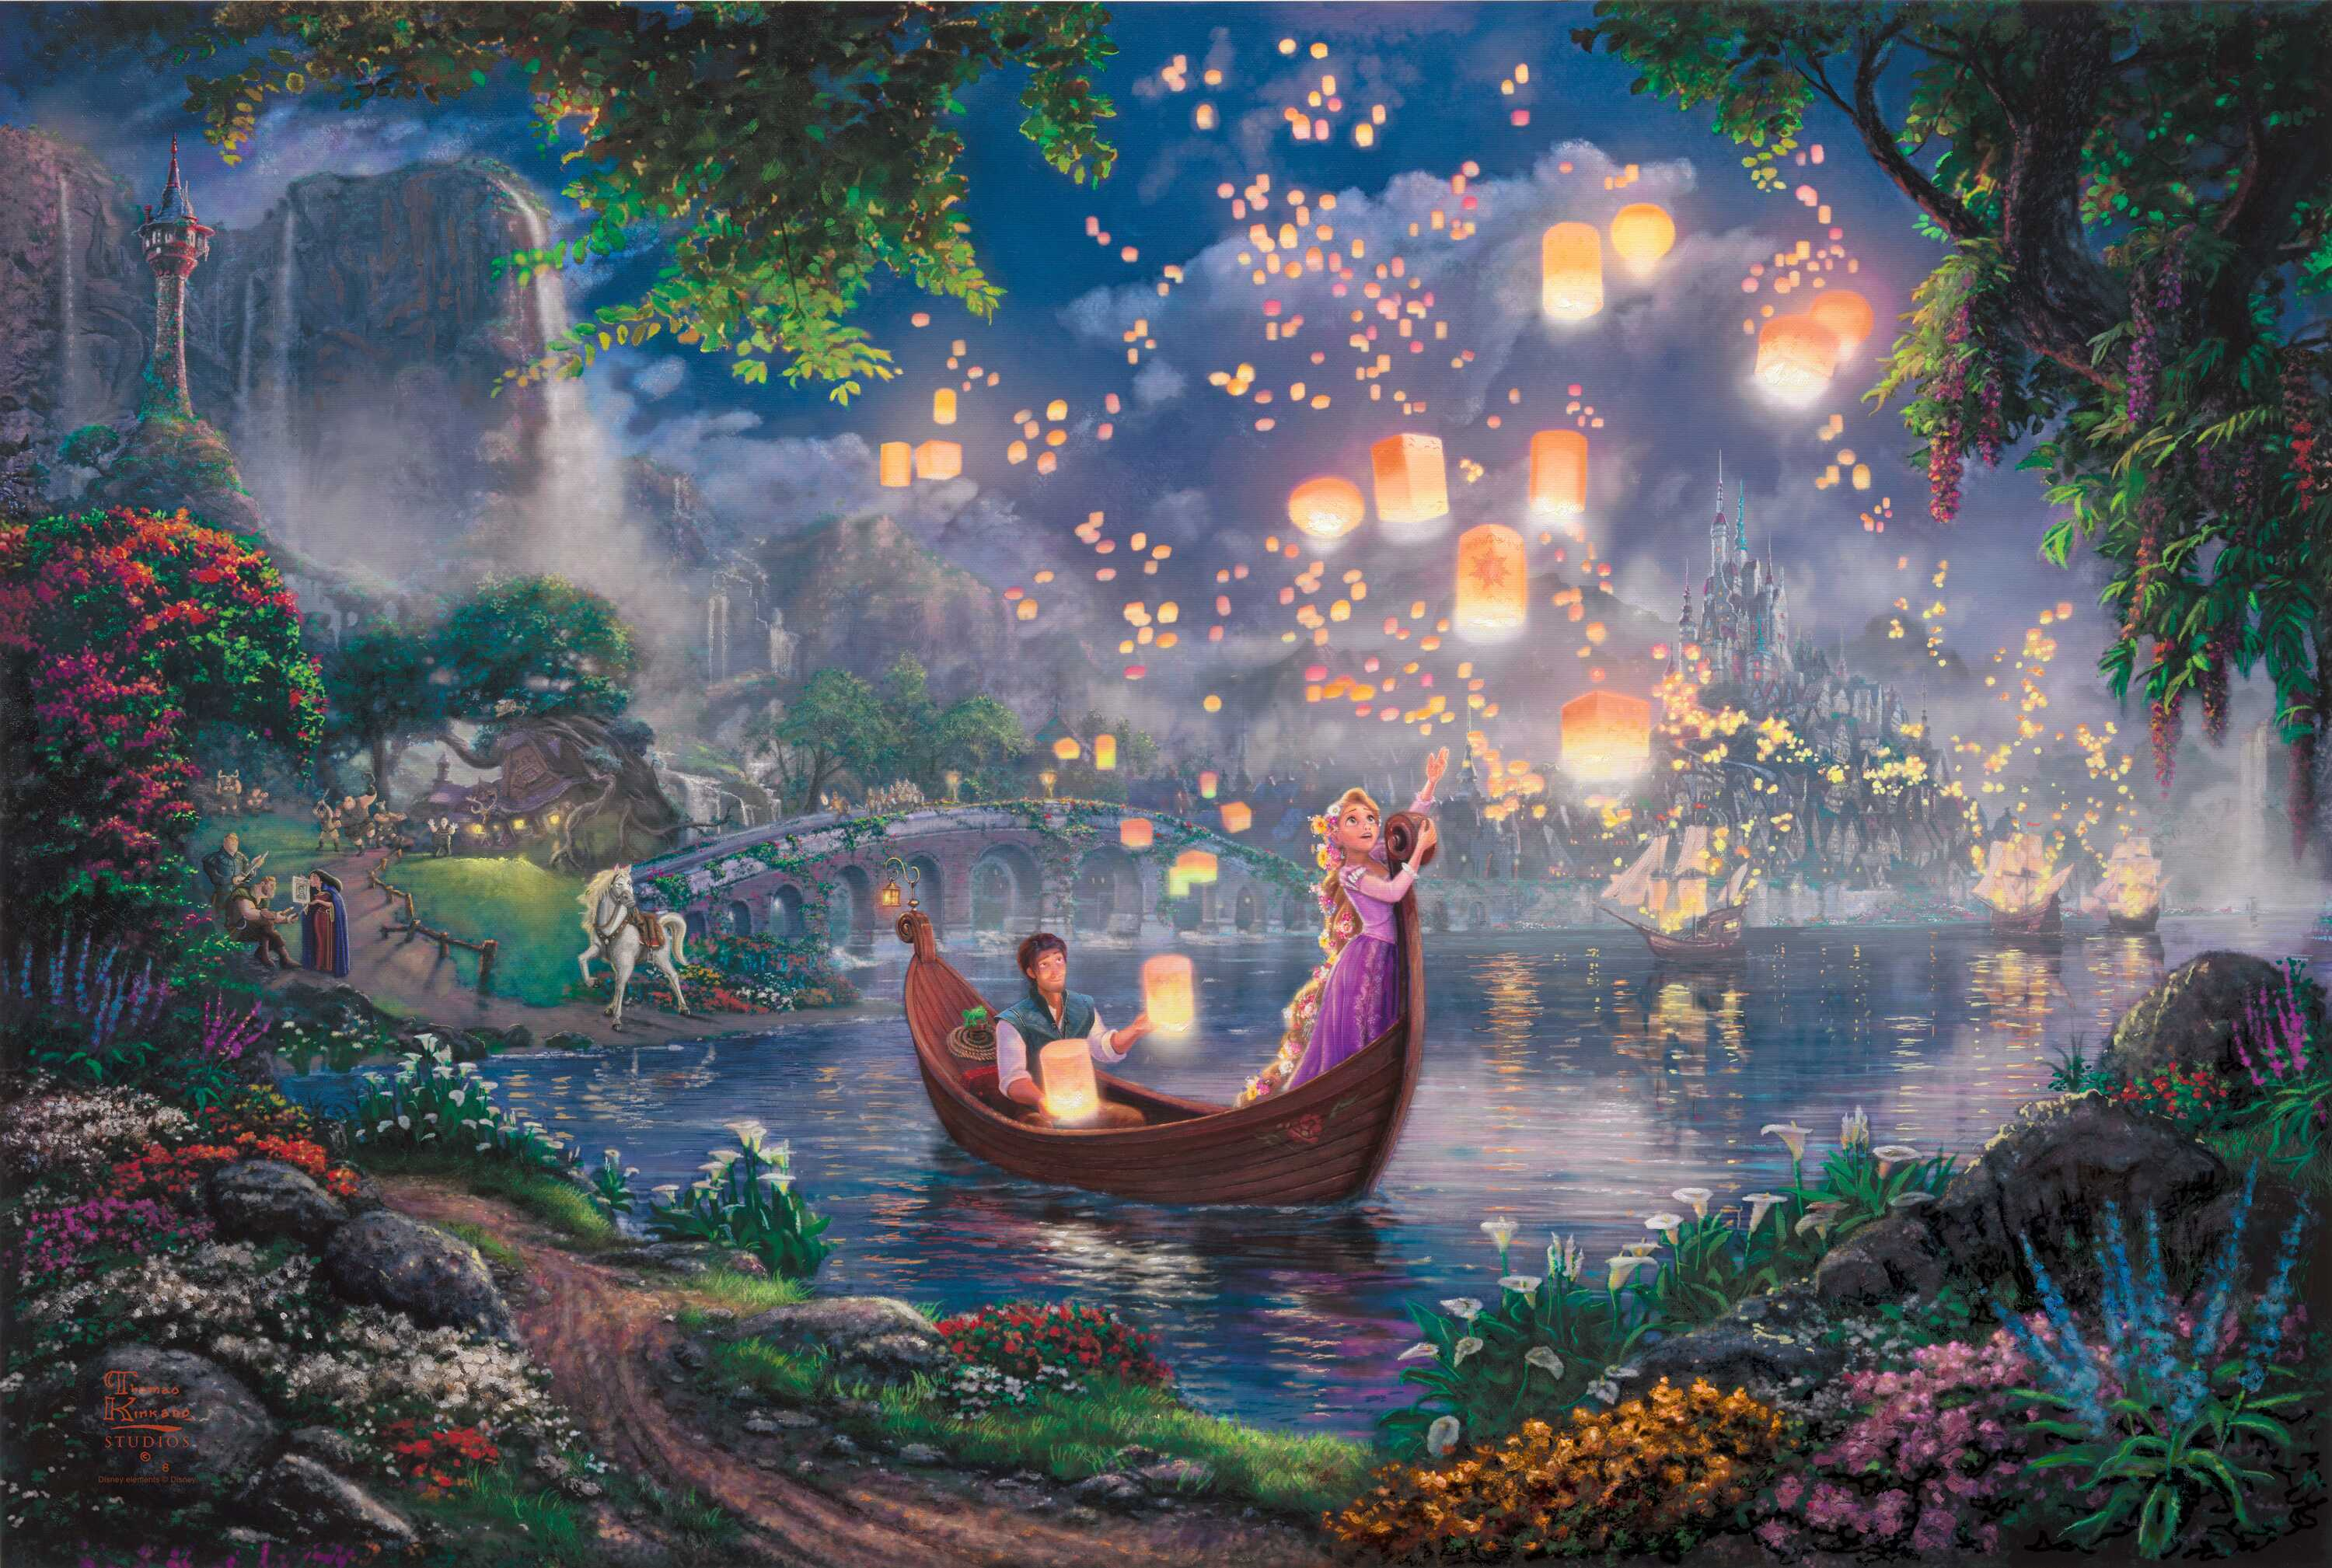 Tangled Wallpaper, Thomas Kinkade, painting, Kinkade, Walt Disney, 50 ...